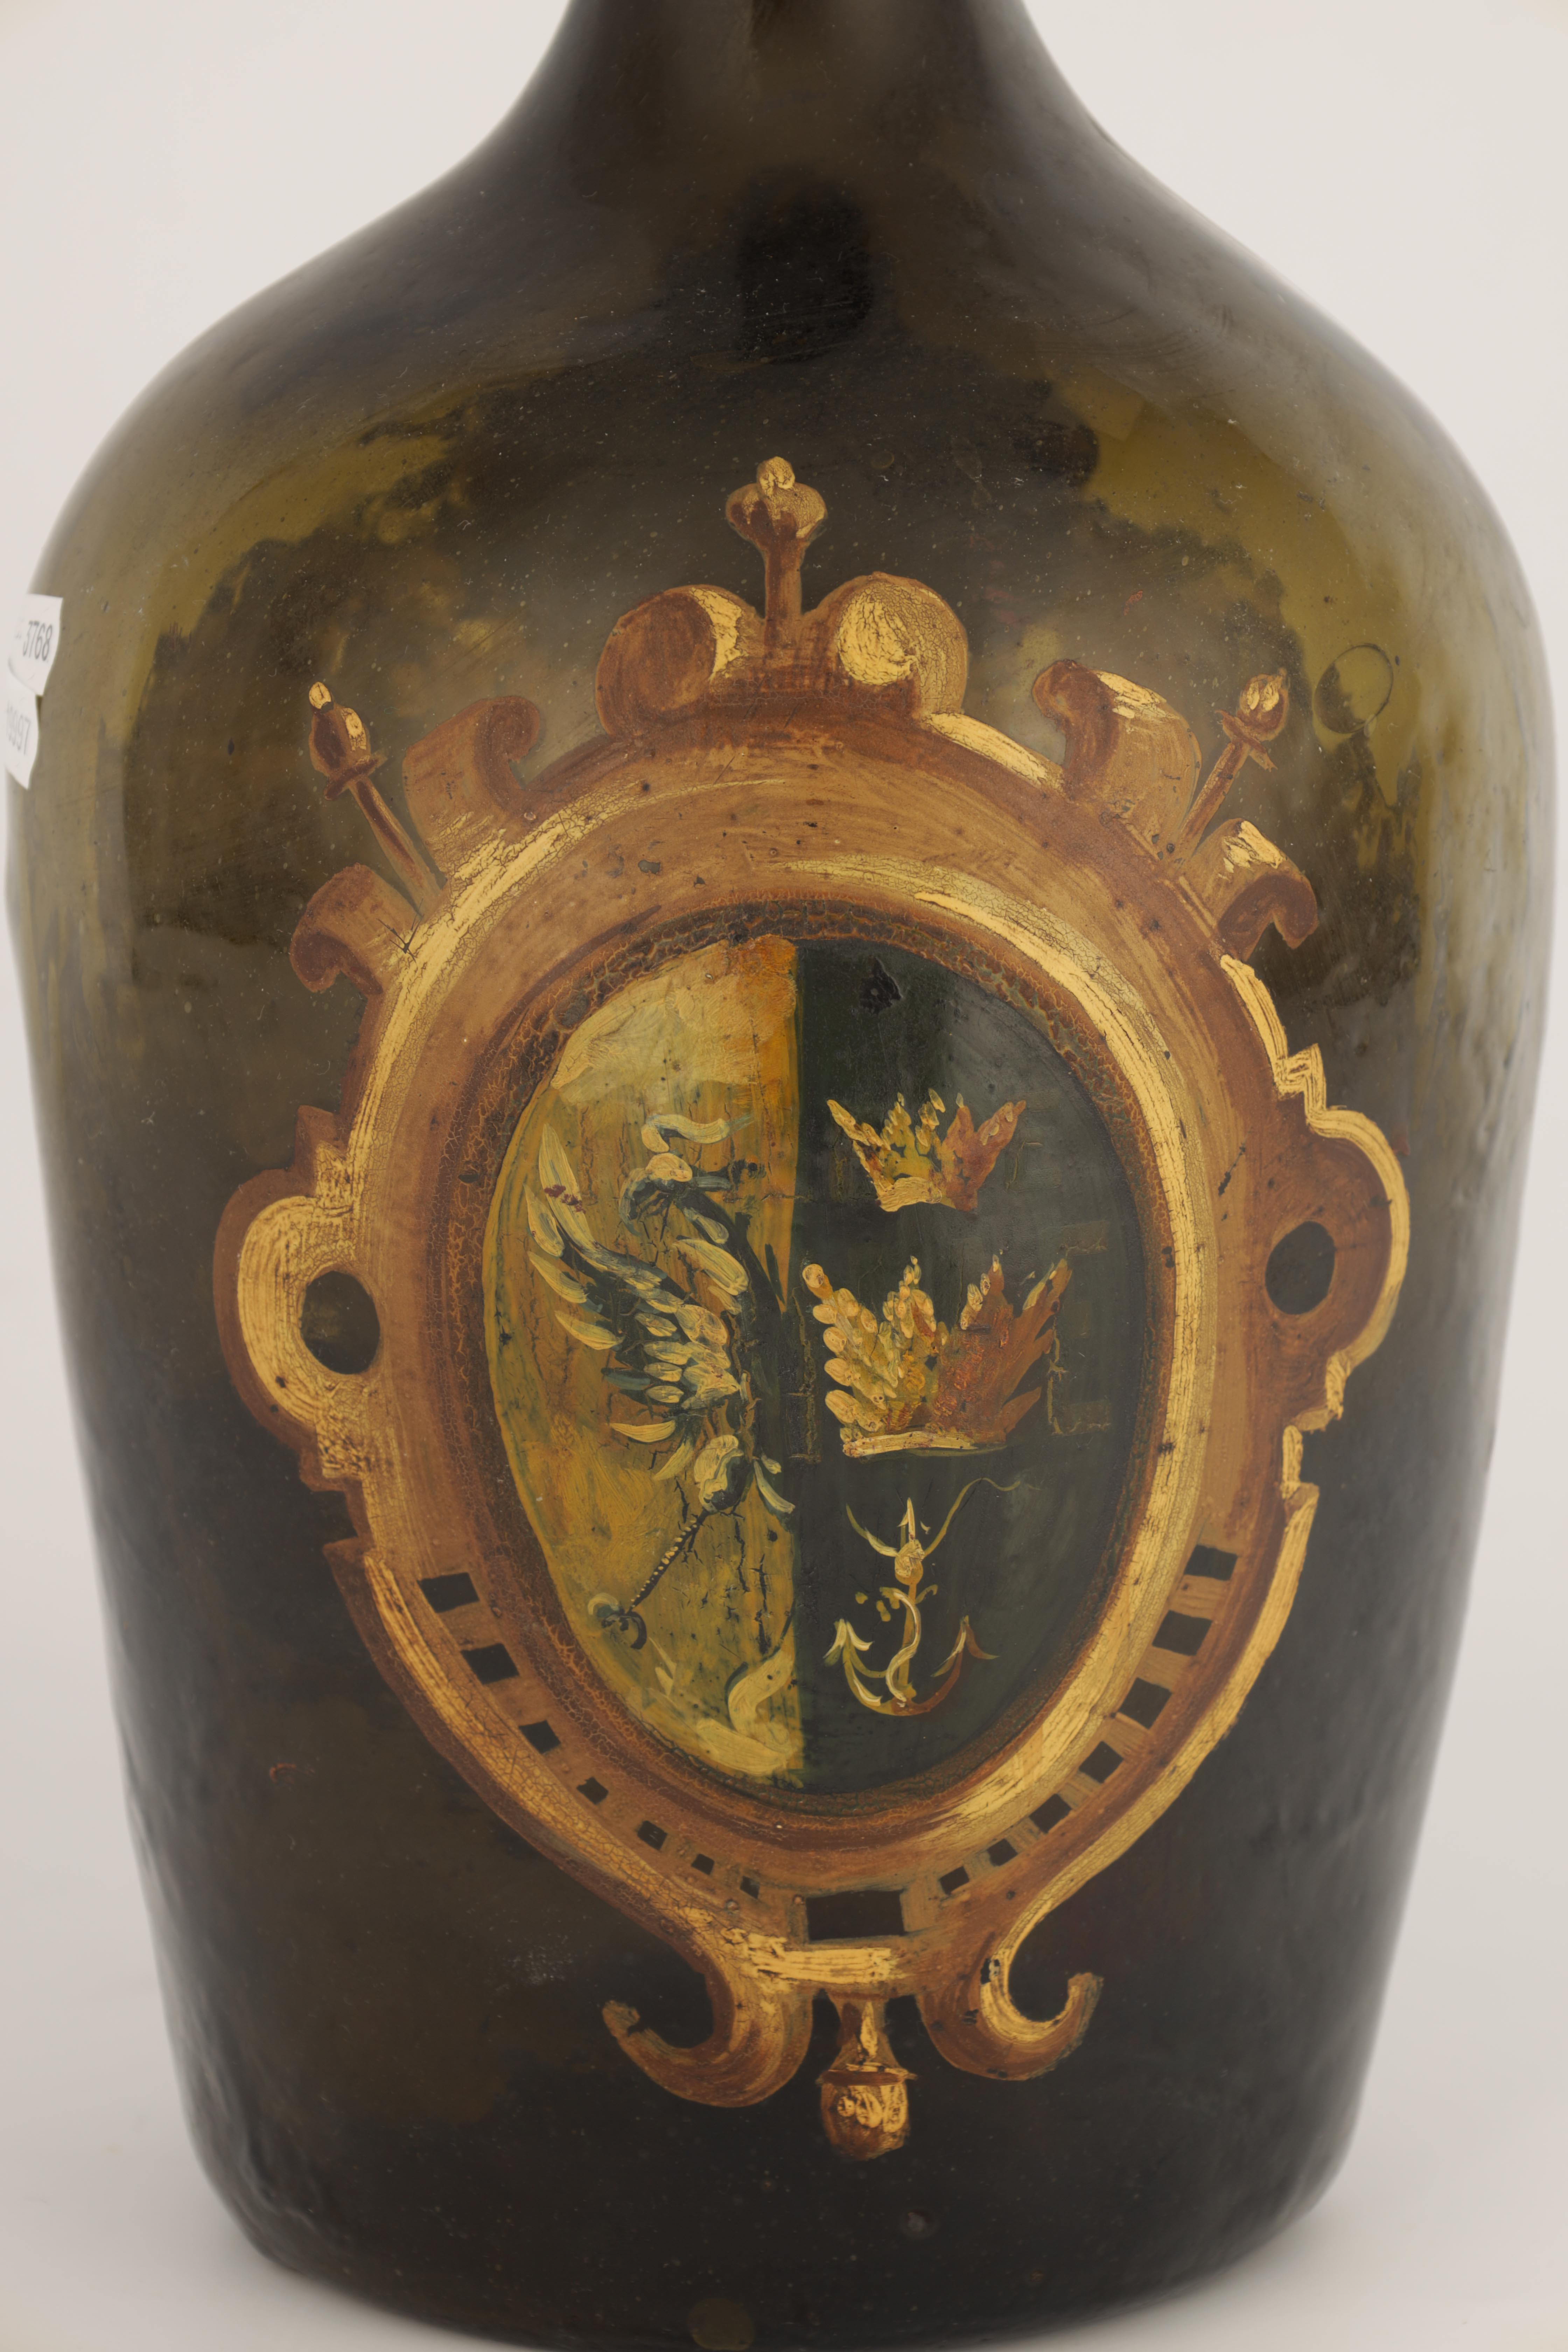 AN 18TH CENTURY GREEN GLASS BOTTLE WITH PAINTED NAVAL SCENE AND ARMOURIAL depicting a naval scene - Image 7 of 9